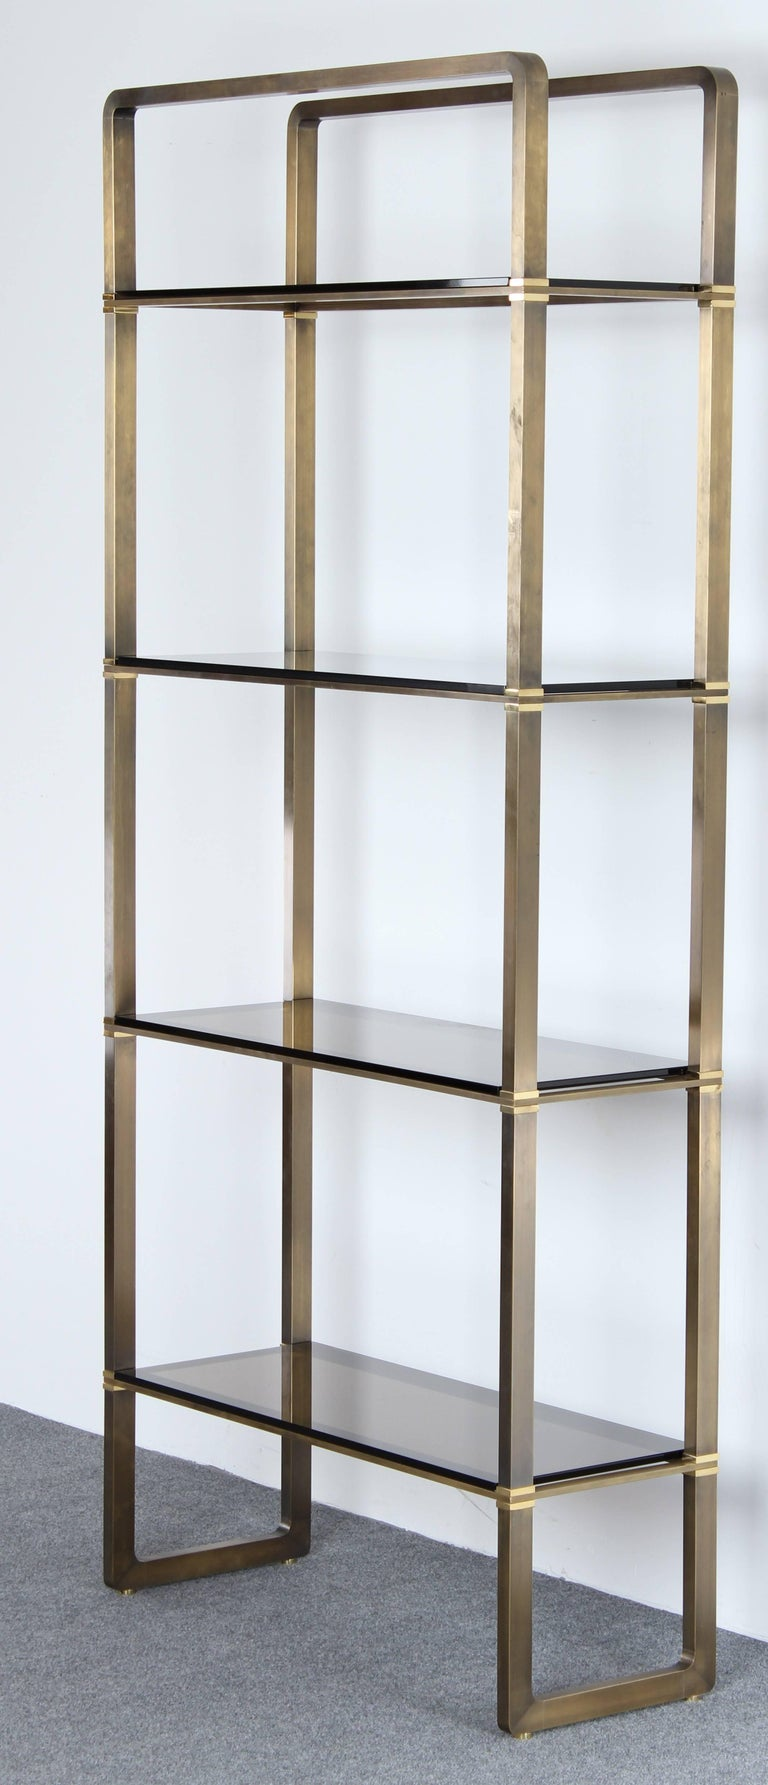 Mid-Century Modern Paul M Jones Bronze and Glass Etagere or Display Shelf, 1960 For Sale